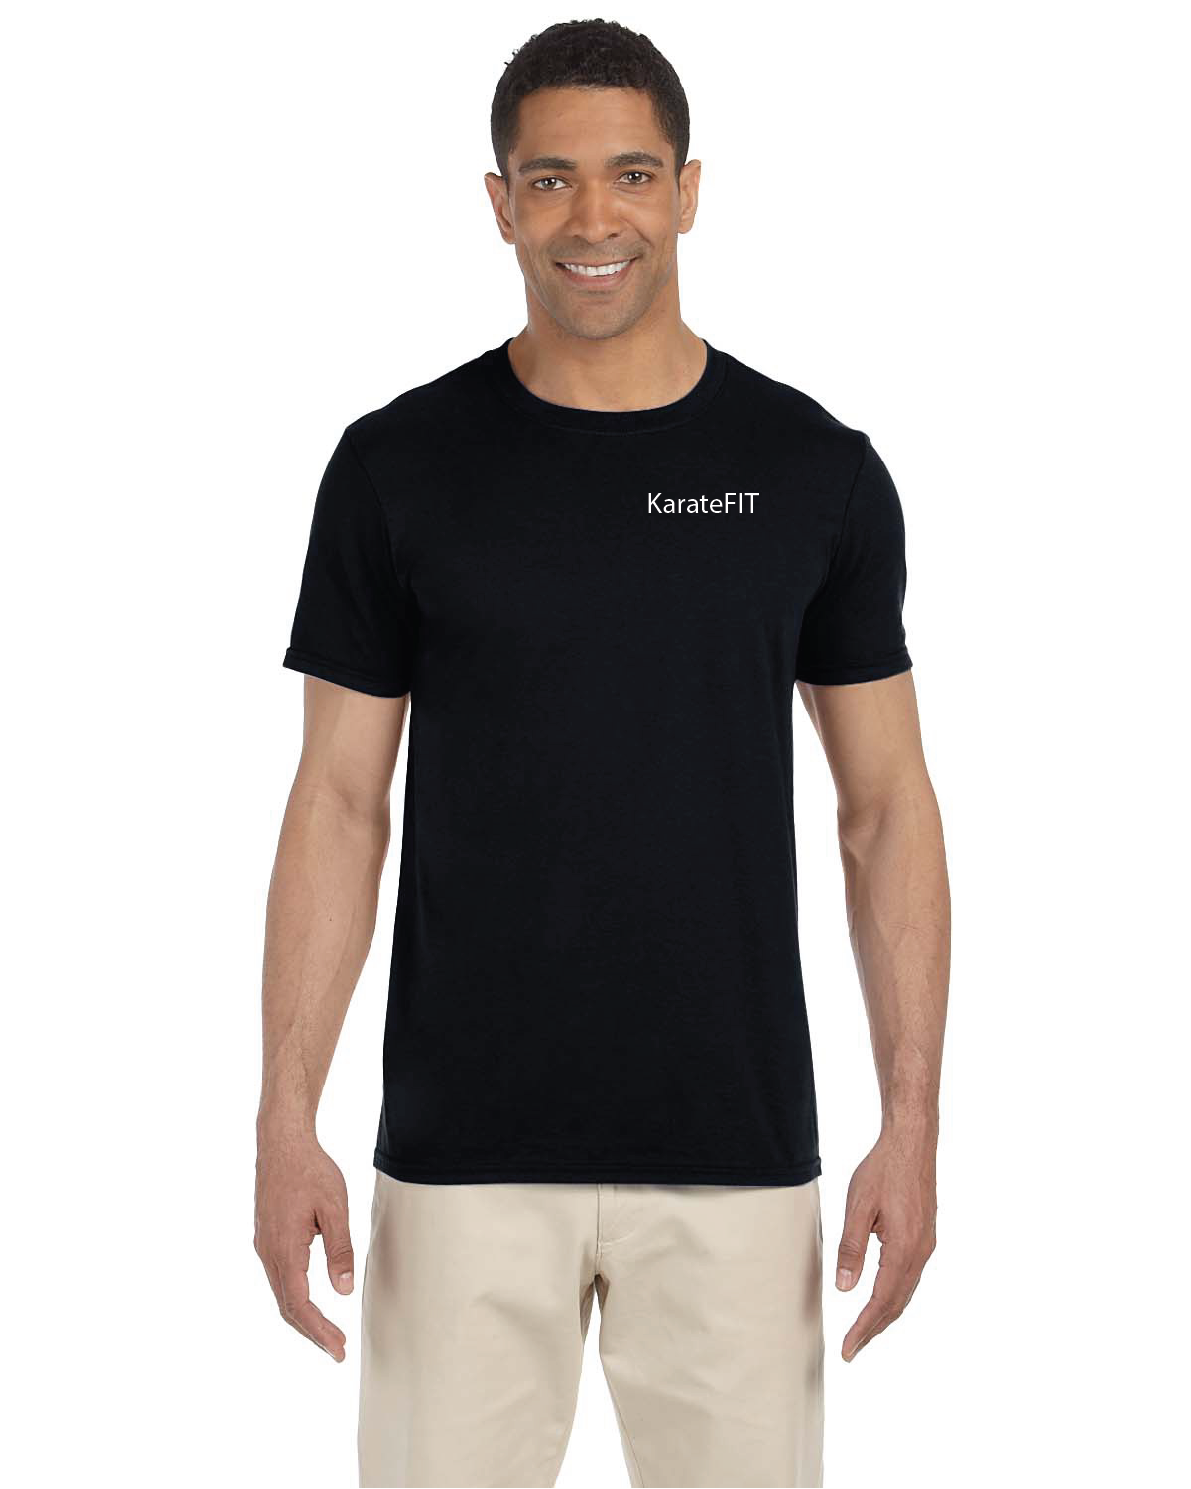 KarateFit T-Shirt